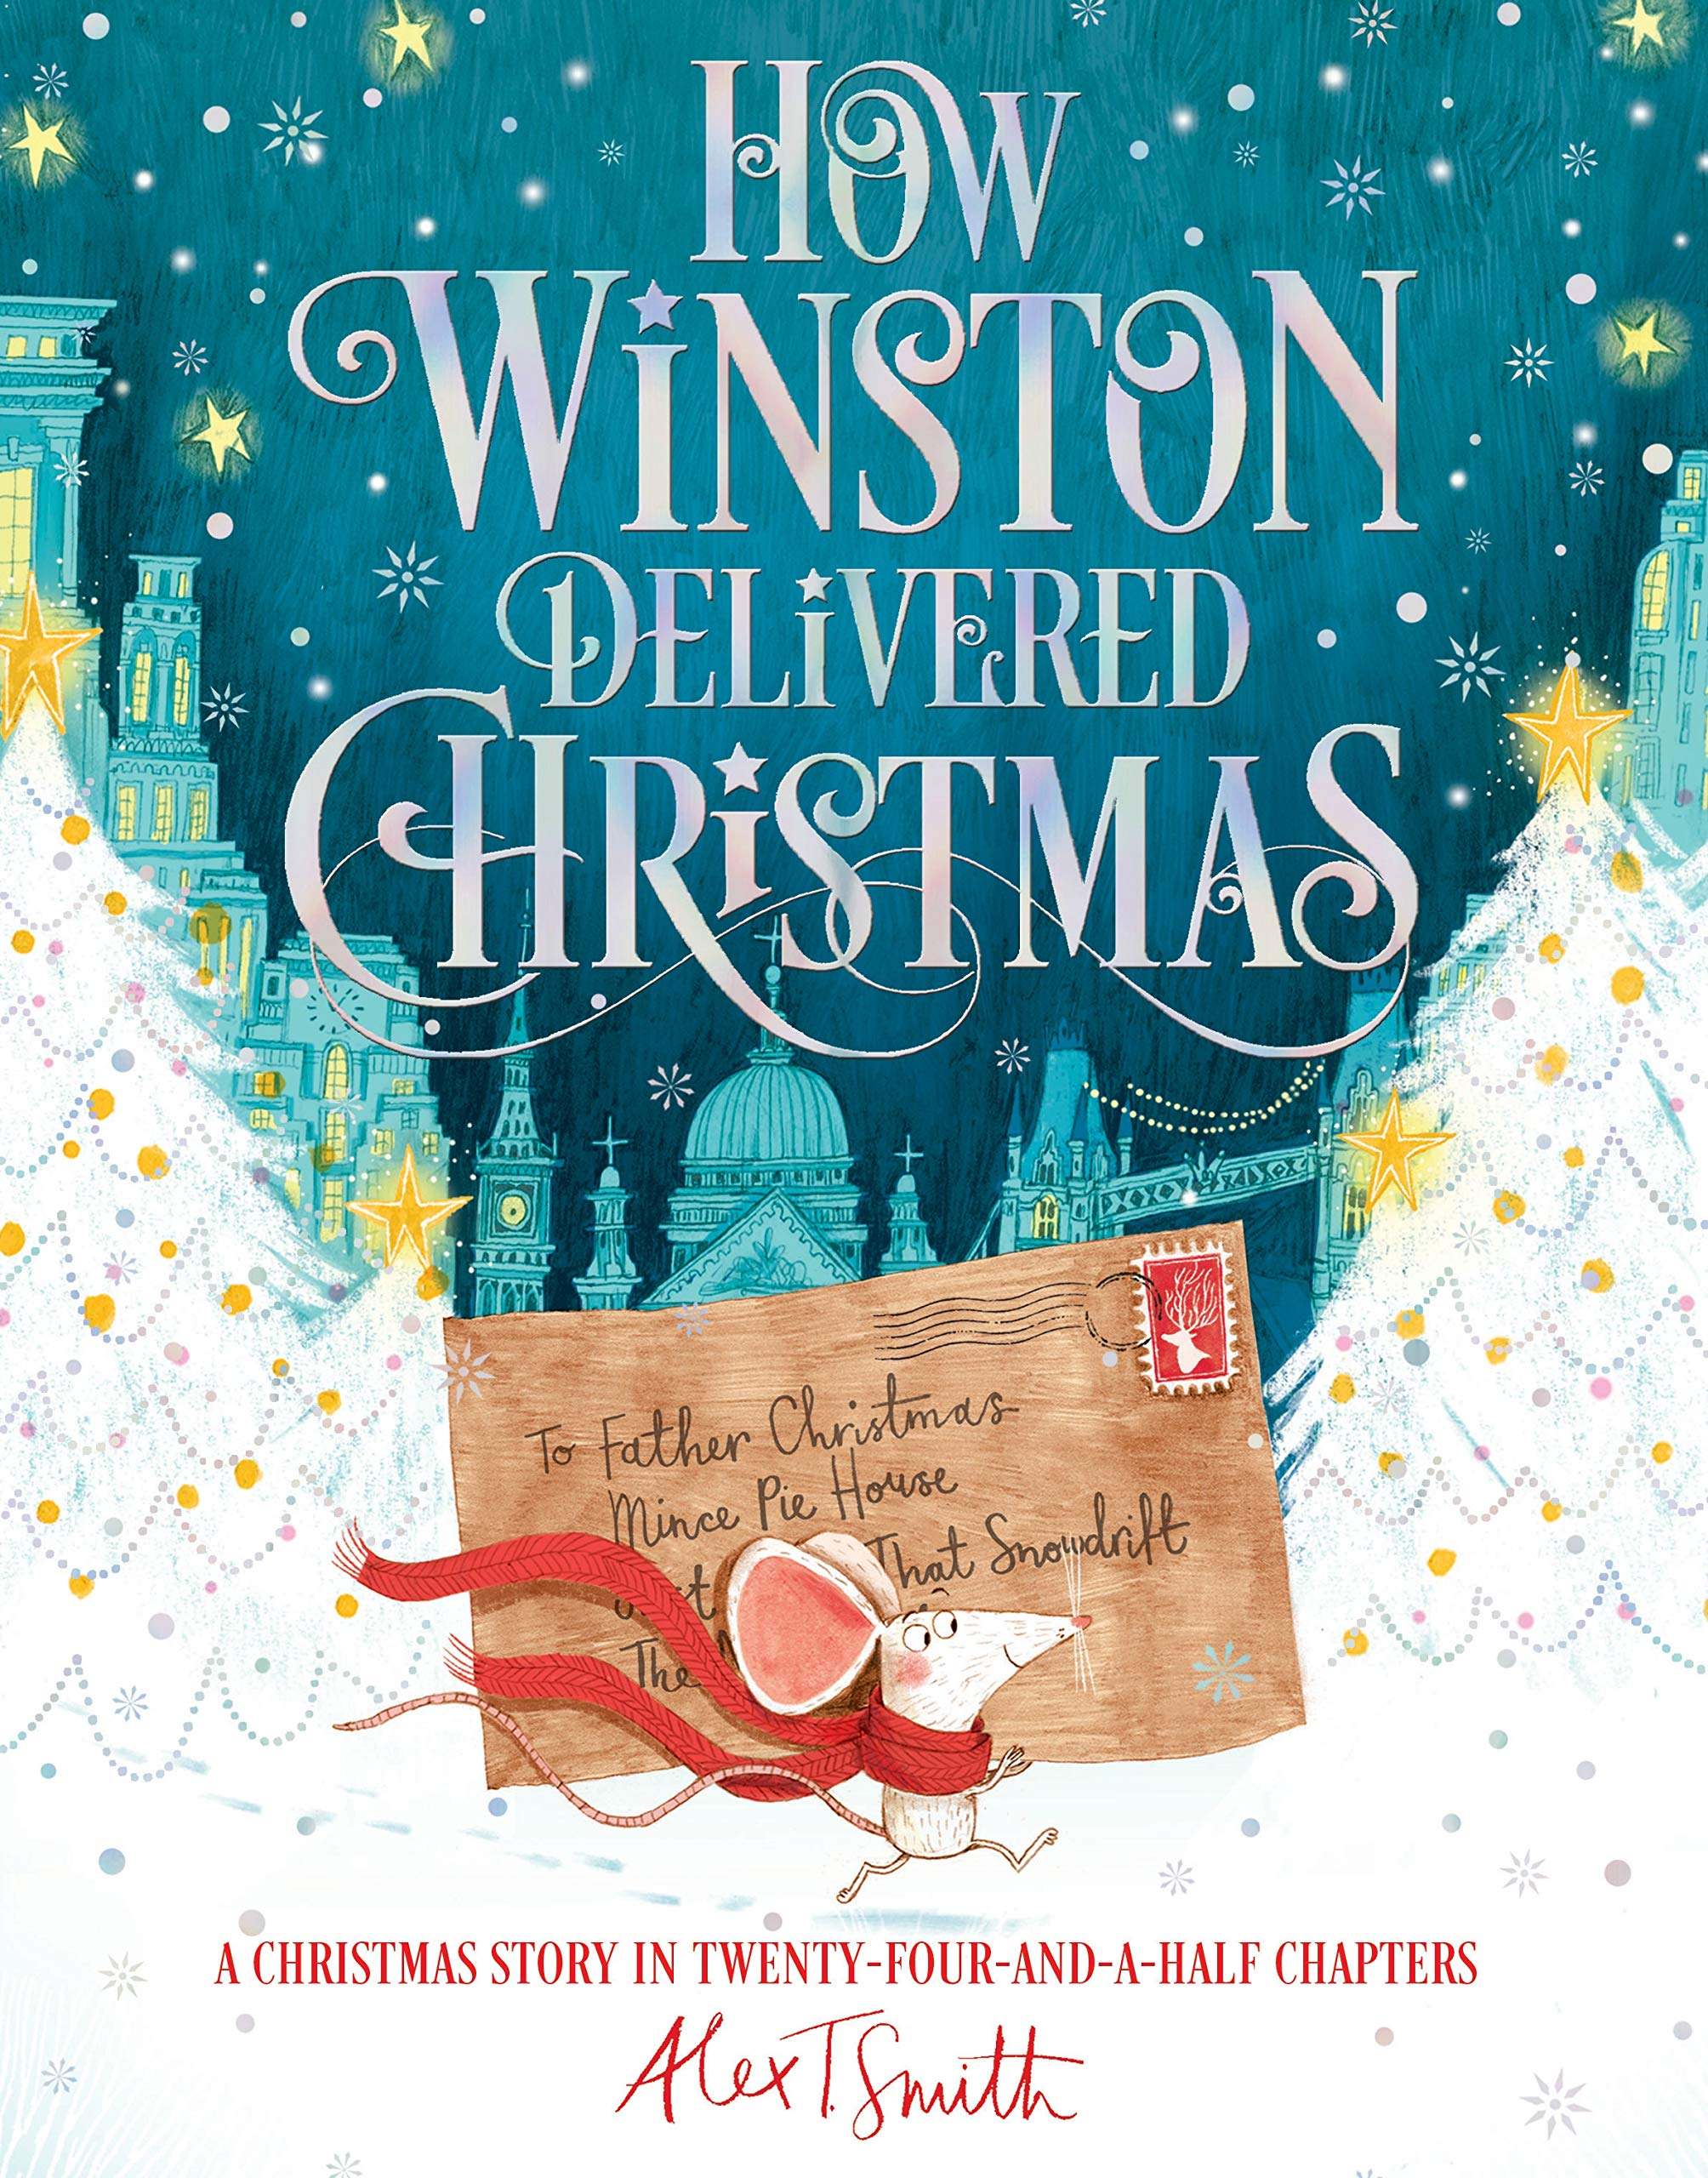 A Christmas Story 2019.How Winston Delivered Christmas A Christmas Story In Twenty